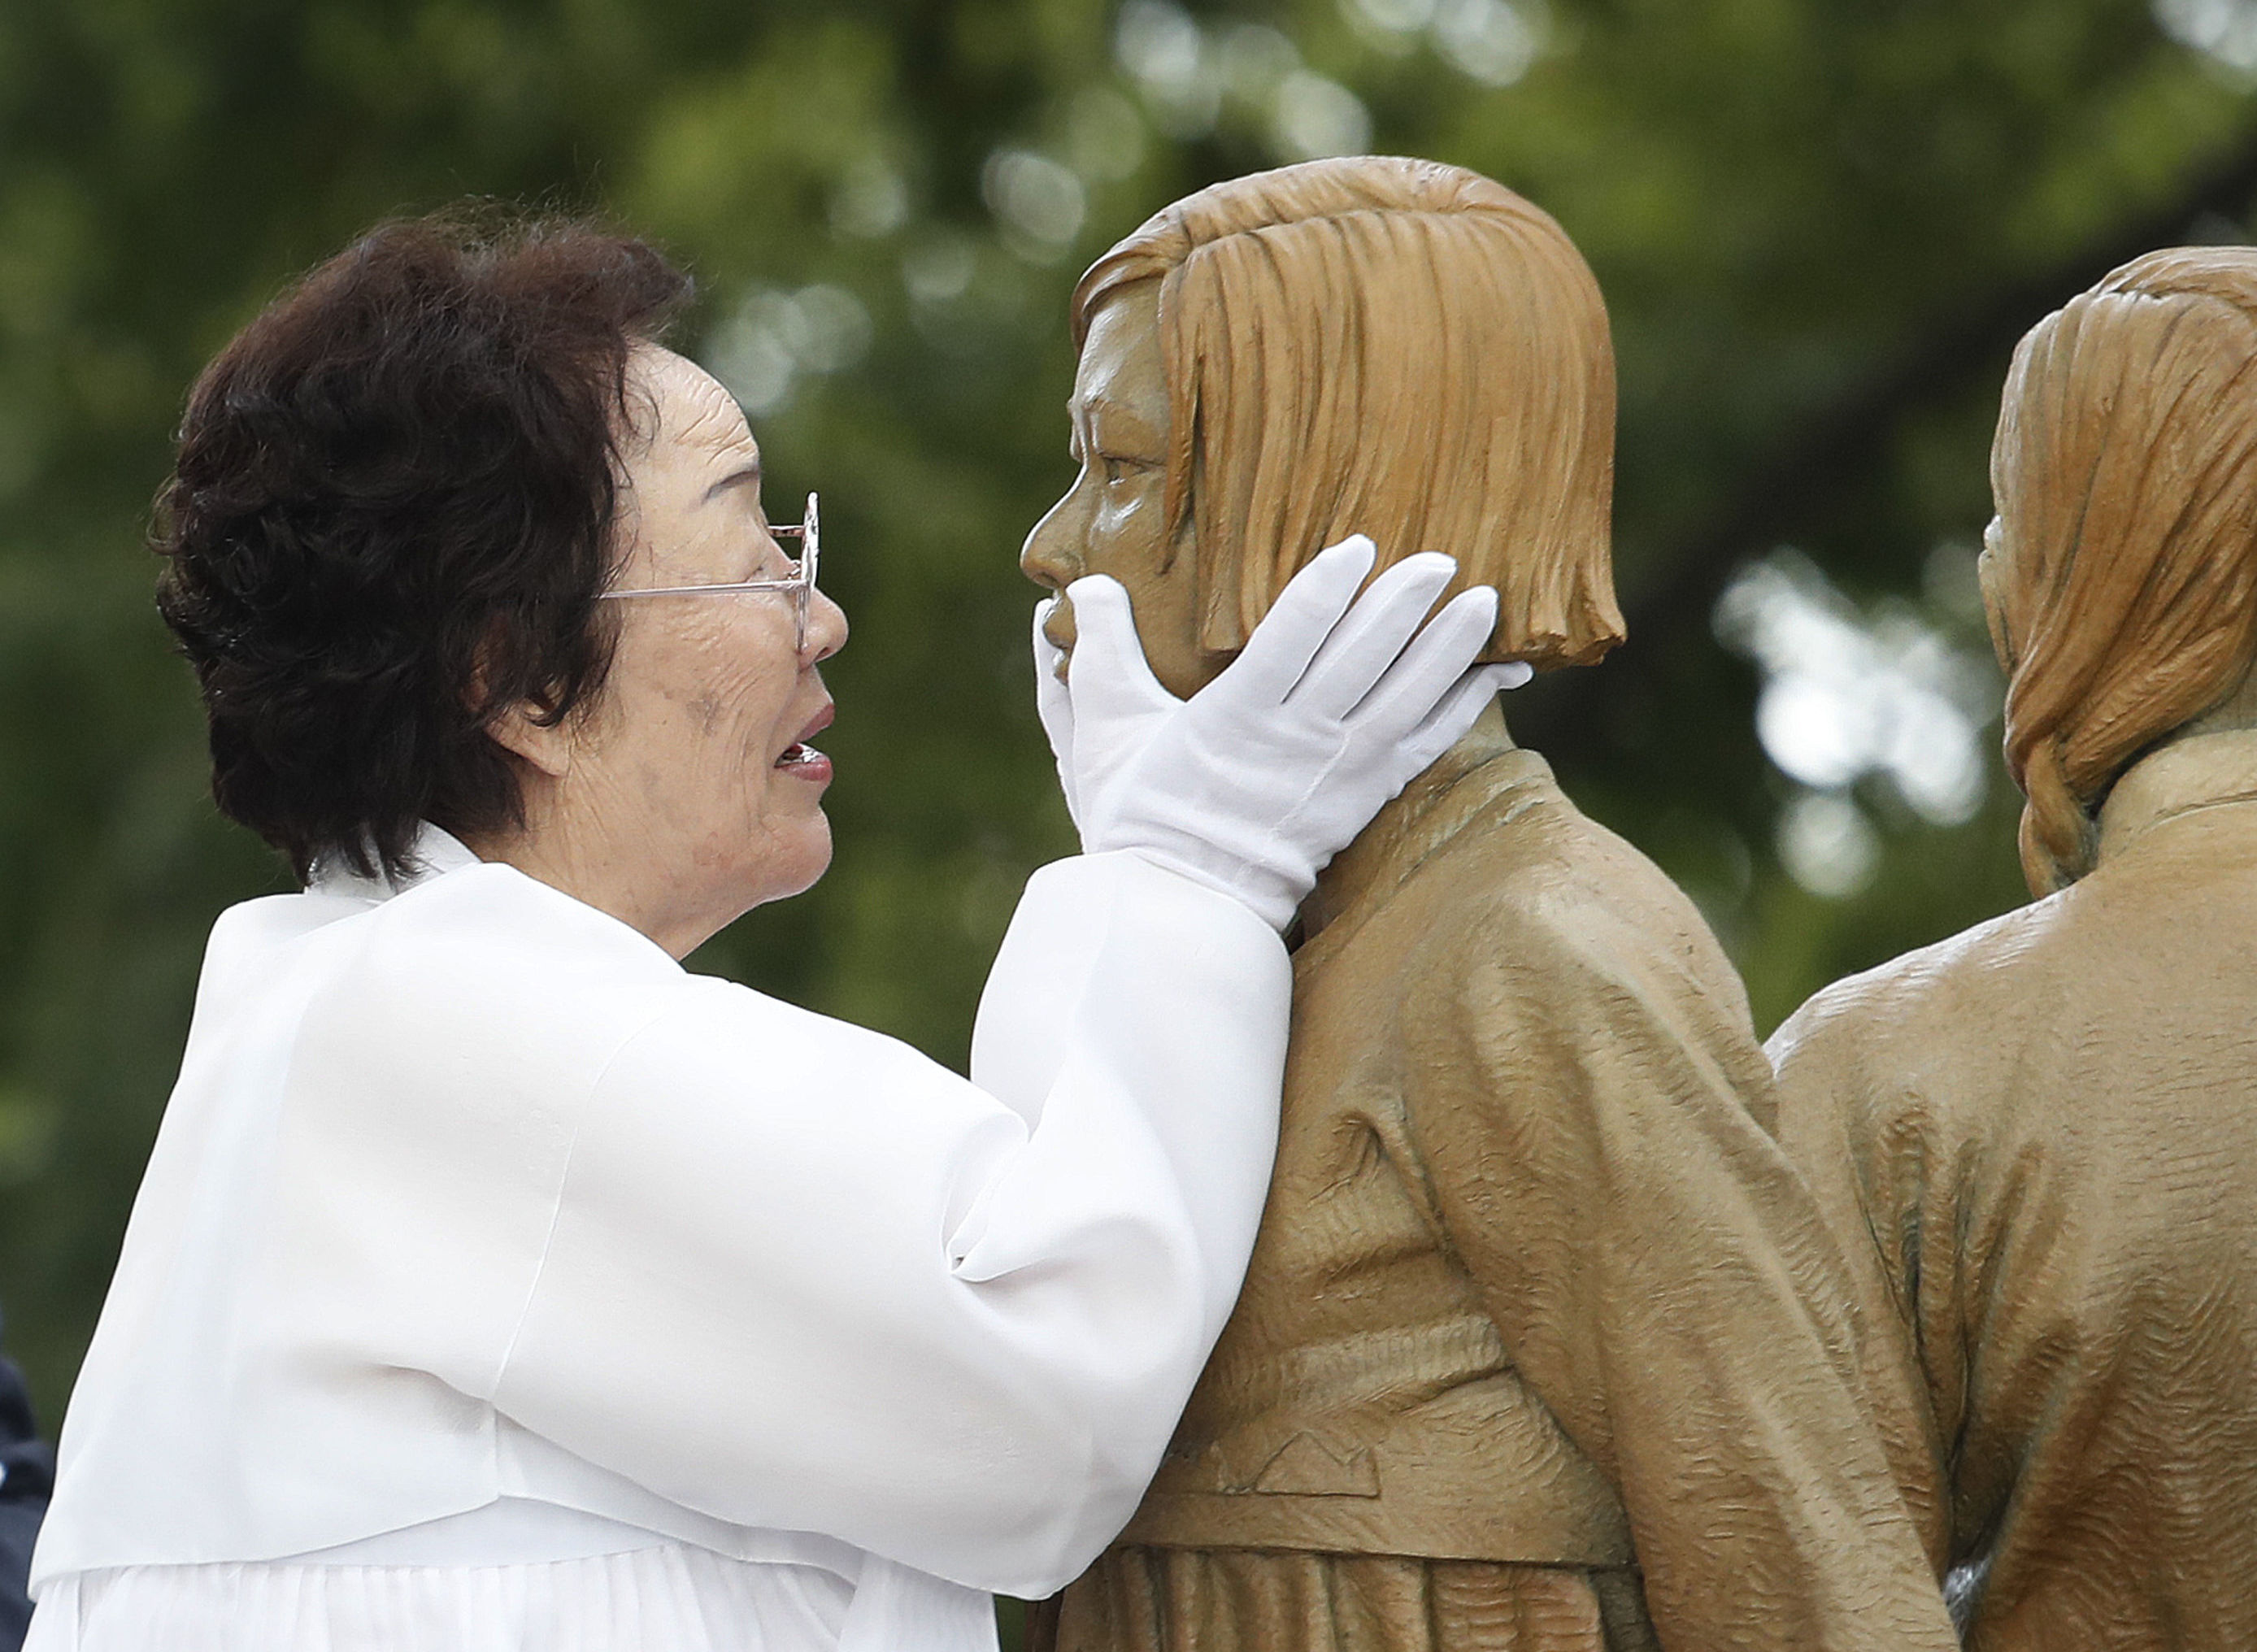 Lee Yong-soo who was forced to serve for the Japanese troops as a sex slave during World War II, touches the face of a statue of a girl symbolising the issue of wartime comfort women during its unveiling ceremony in Seoul, South Korea, Wednesday, Aug. 14, 2019.